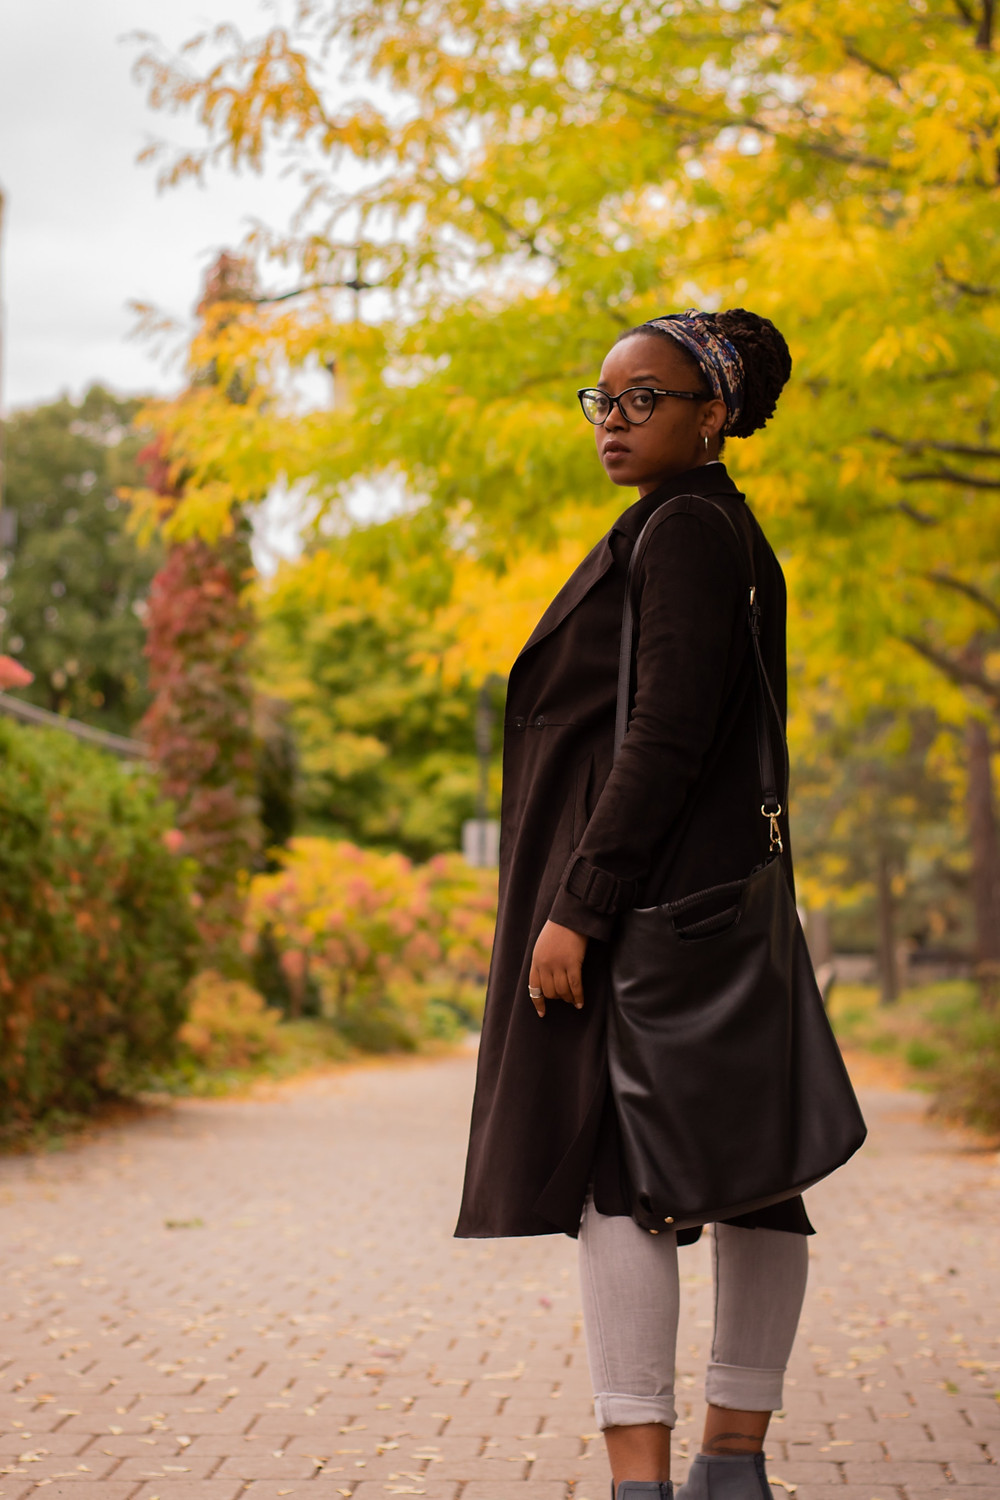 cool black woman in stylish brown coat